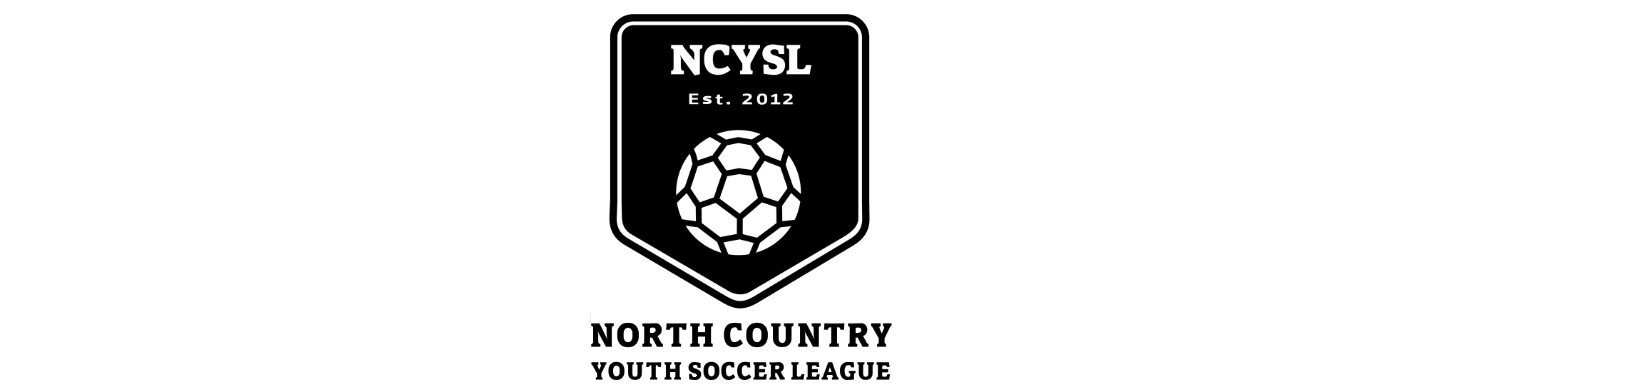 Updated ncysl logo